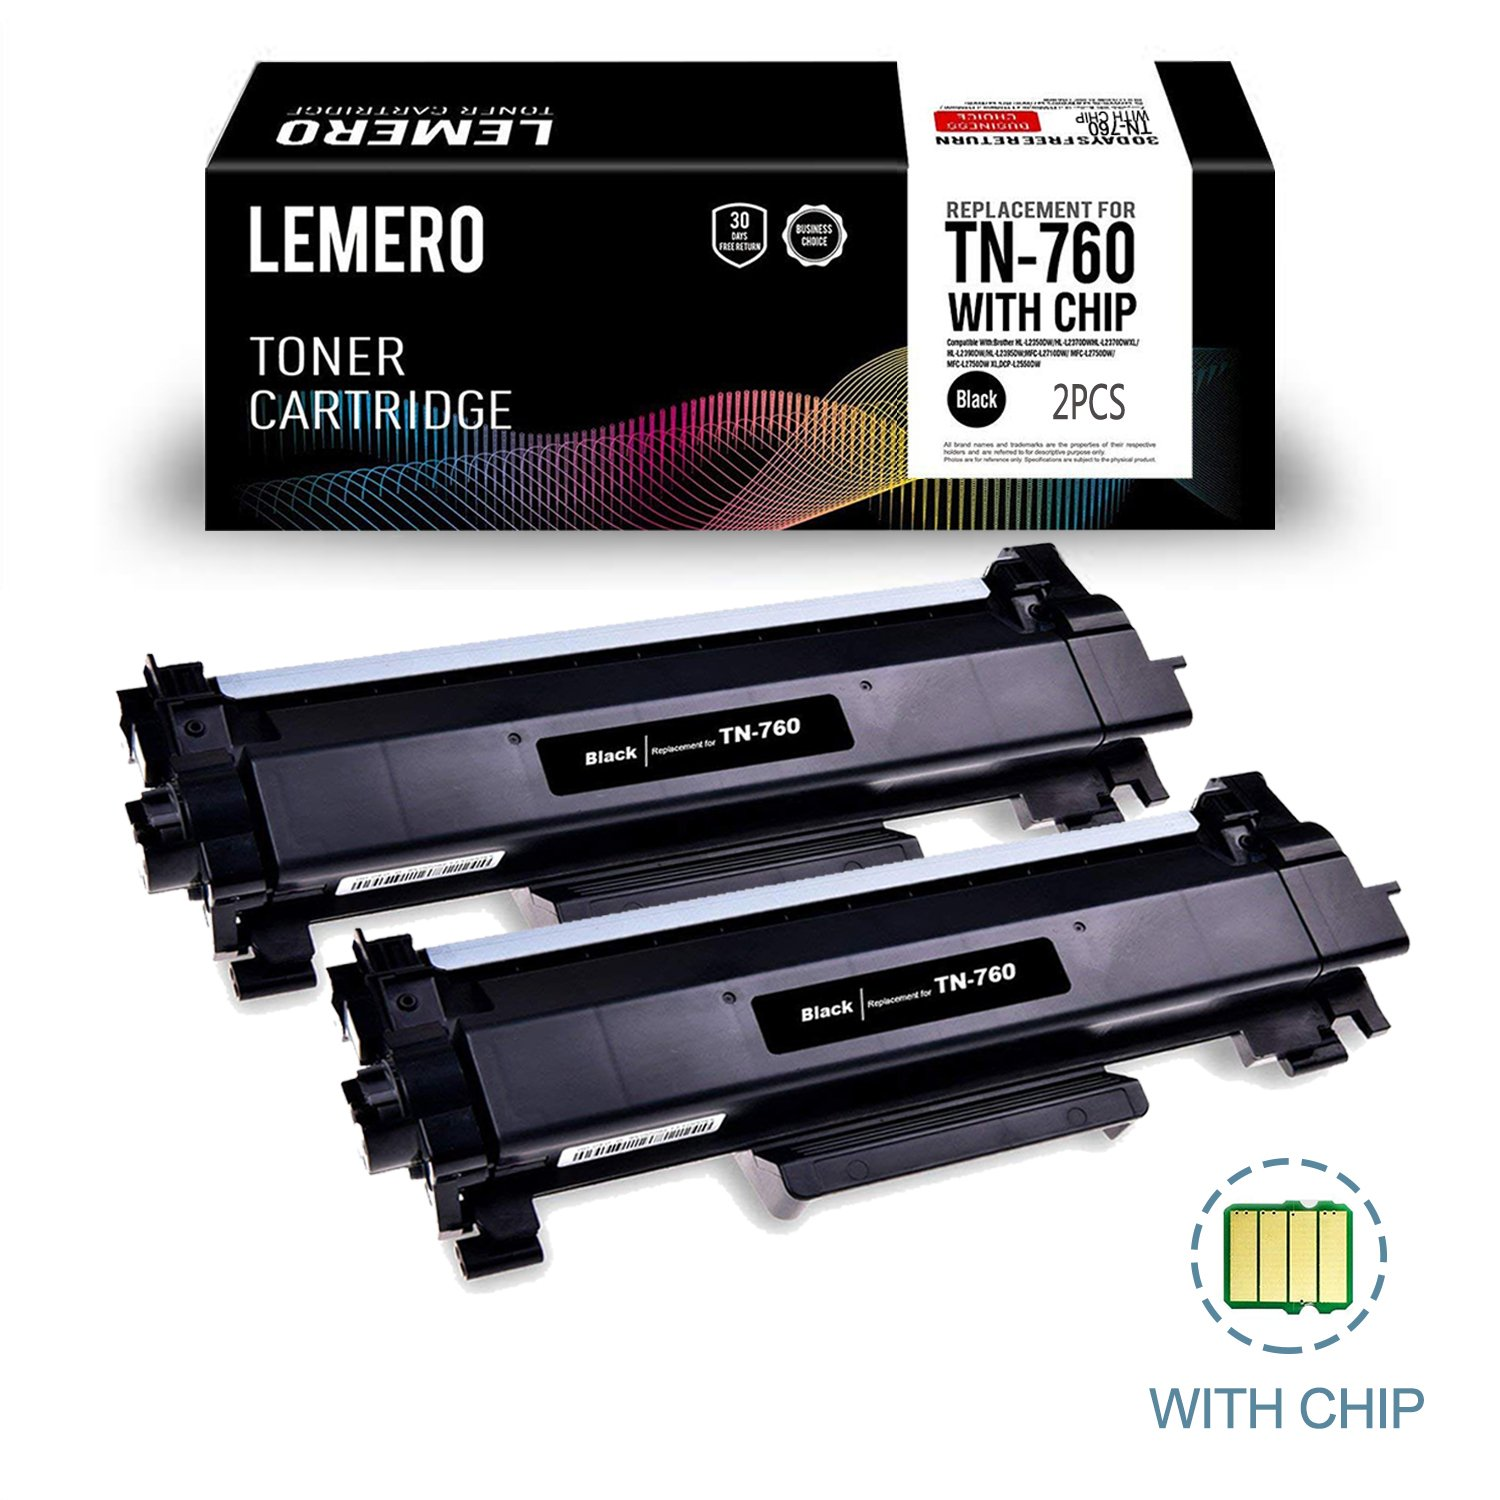 LEMERO (WITH IC CHIP) Compatible Brother TN760 TN730 High Yield Black Toner Cartridge - for Brother HL-L2350DW HL-L2395DW DCP-L2550DW MFC-L2710DW MFC-L2750DW, 2 Pack